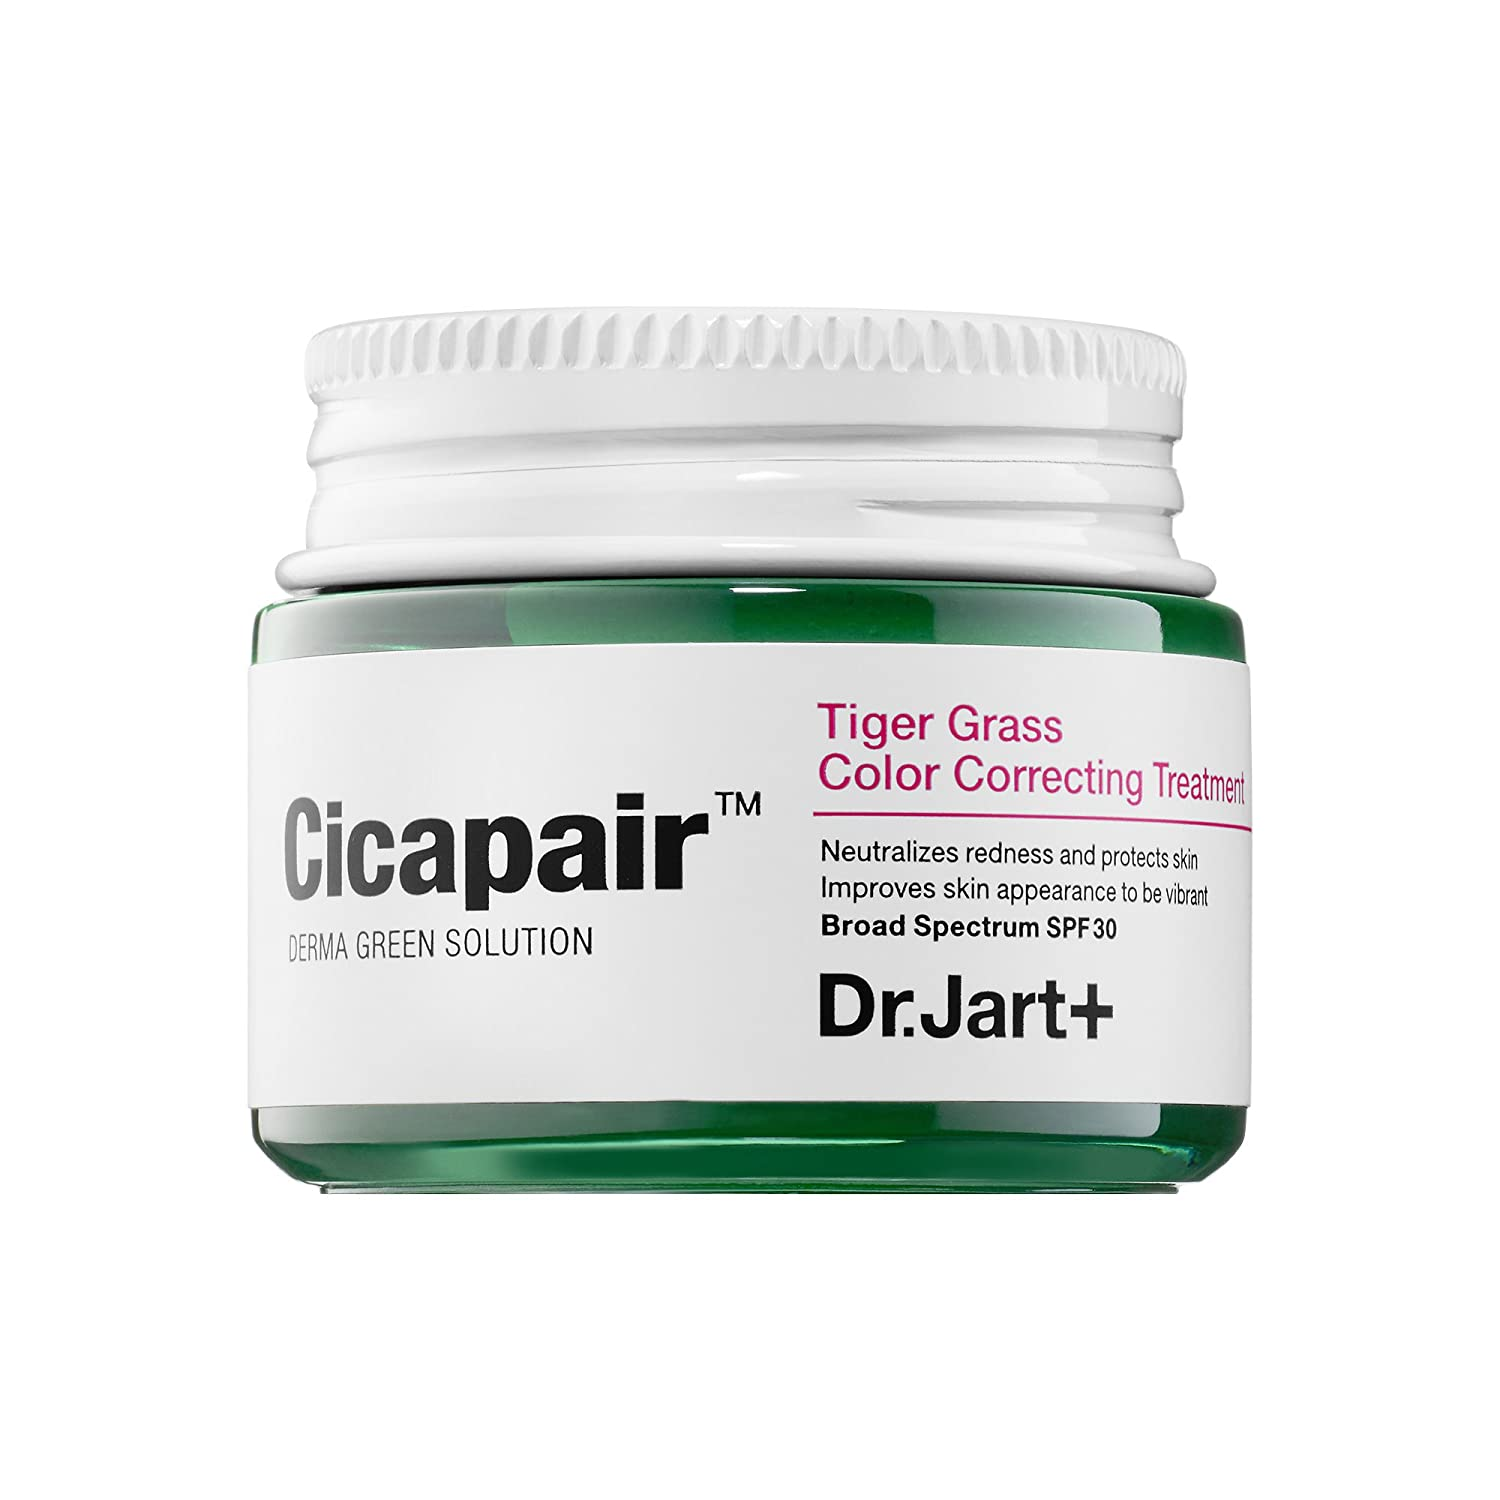 DR. JART+ Cicapair Tiger Grass Color Correcting Treatment SPF 30 0.5 oz/ 15 mL (travel size)